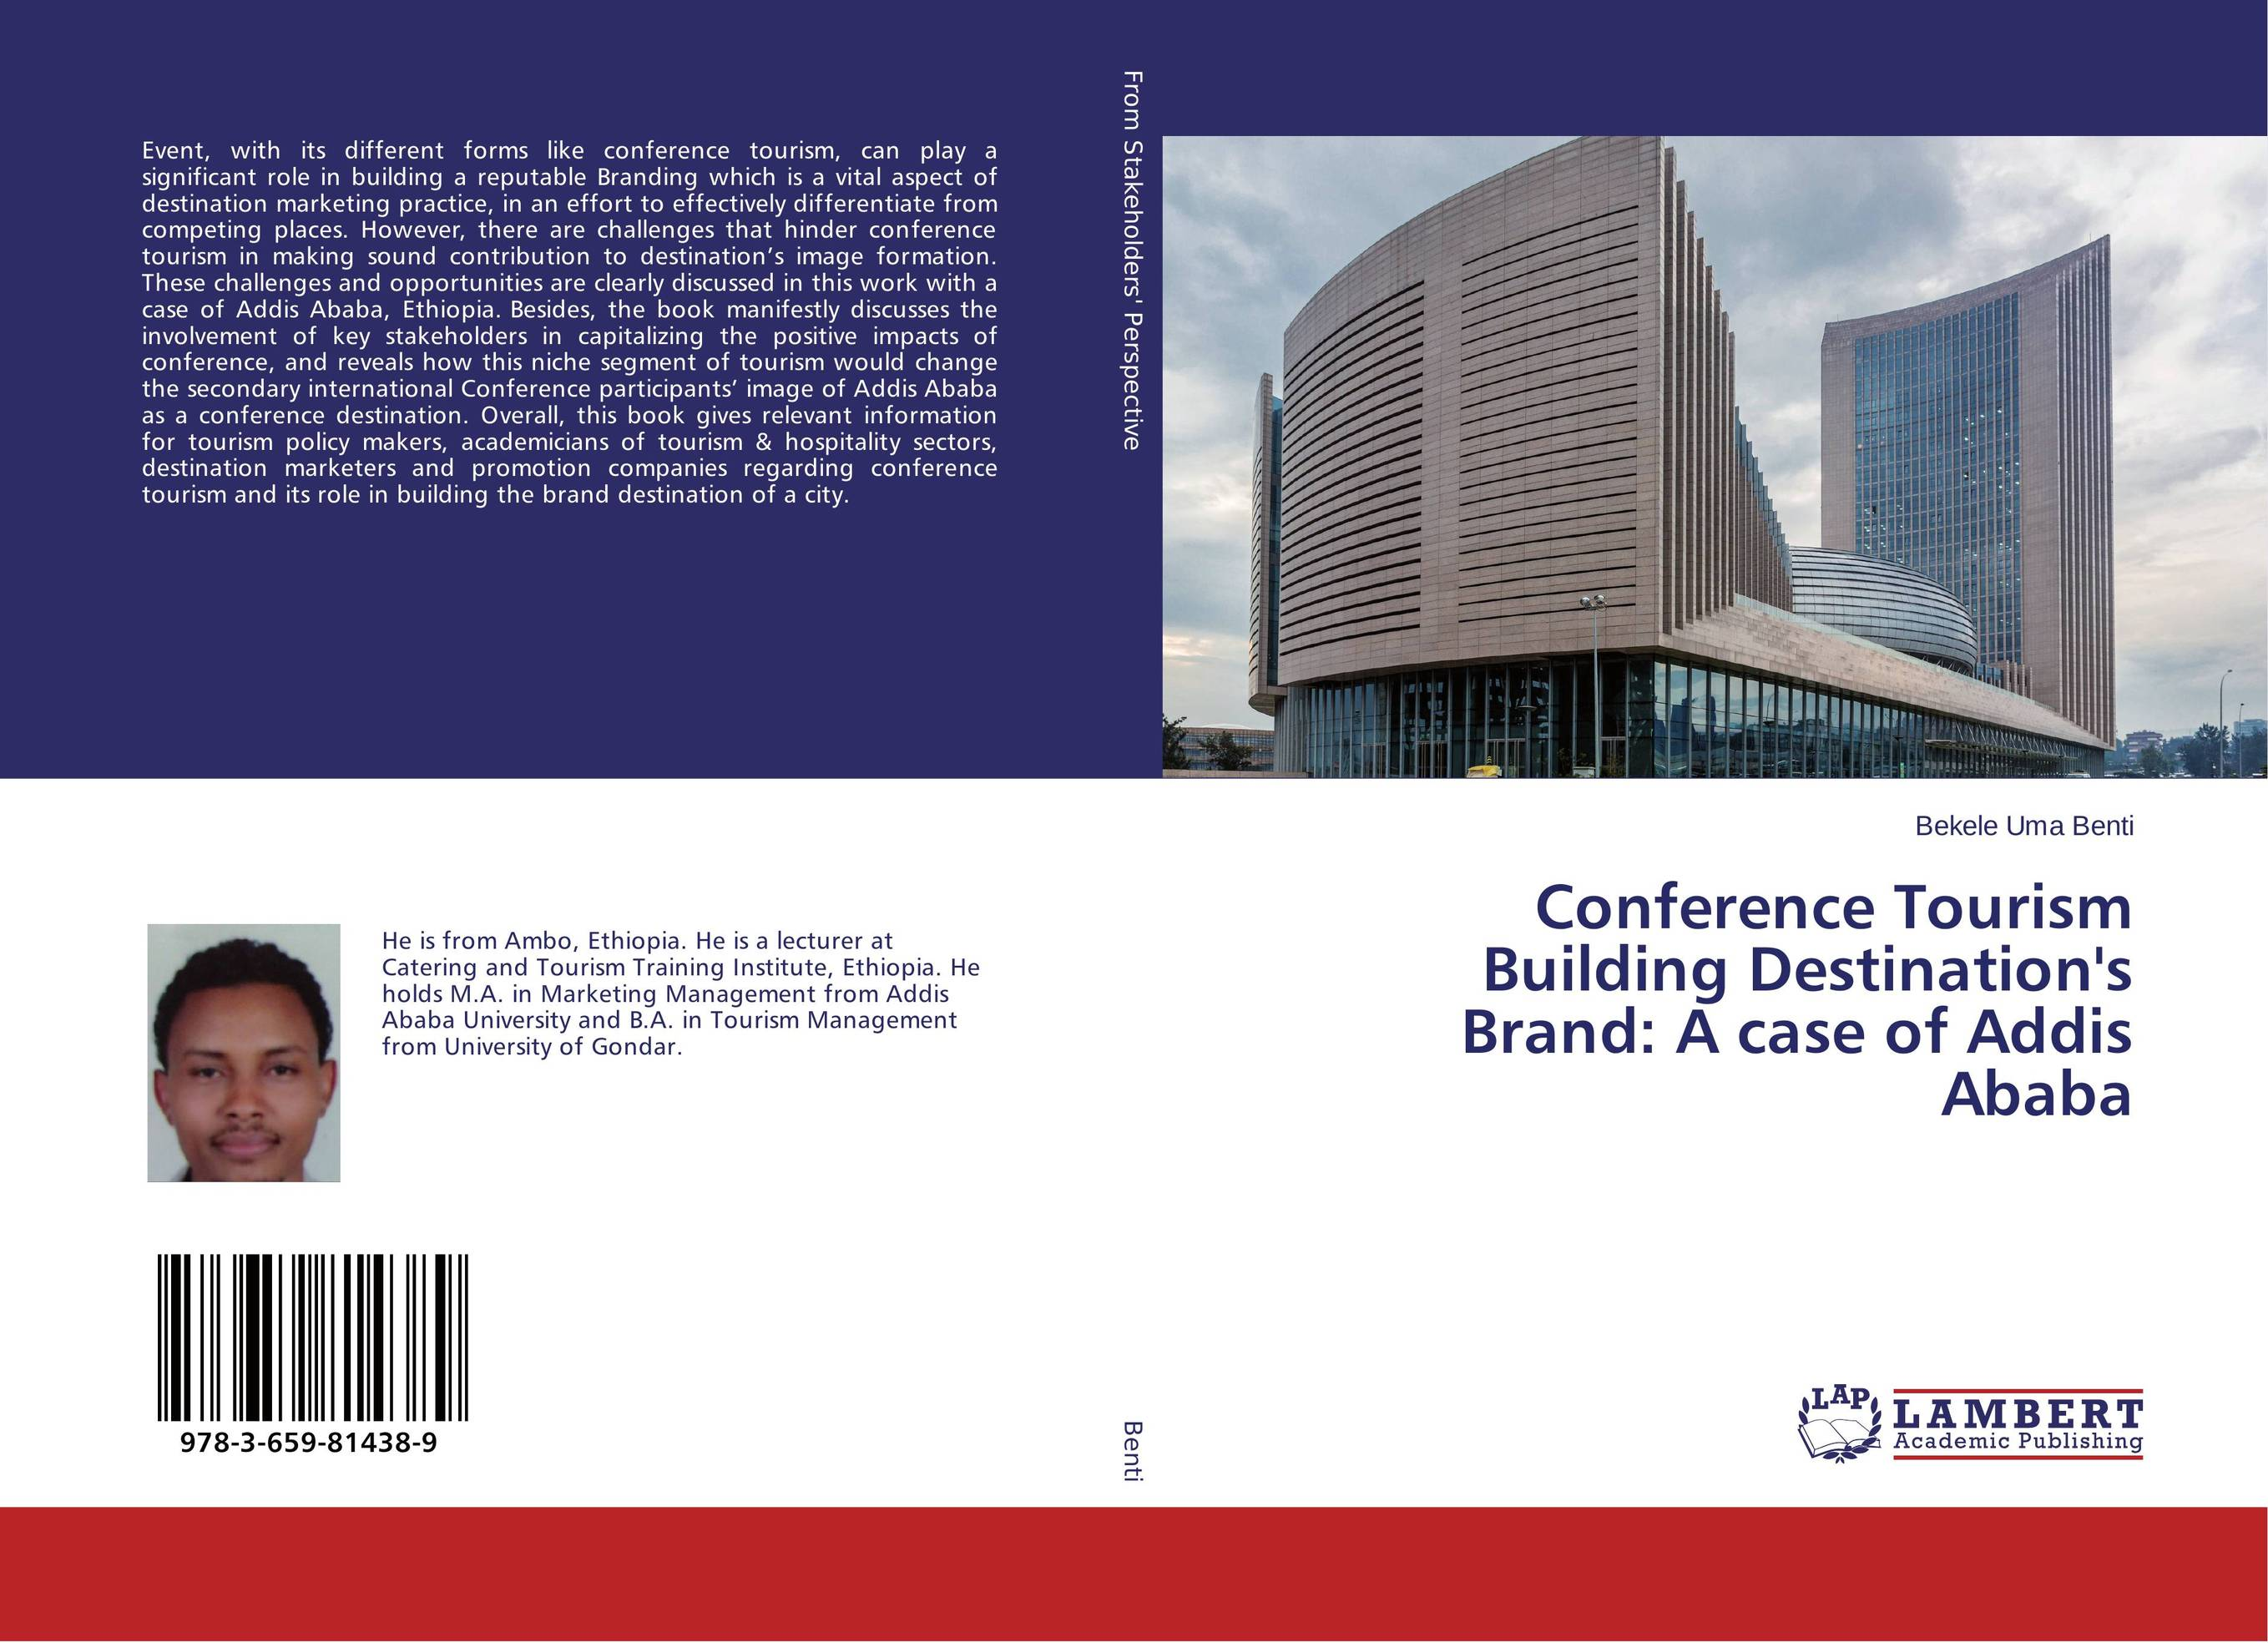 Conference Tourism Building Destination's Brand: A case of Addis Ababa new media and domestic tourism promotion in kenya